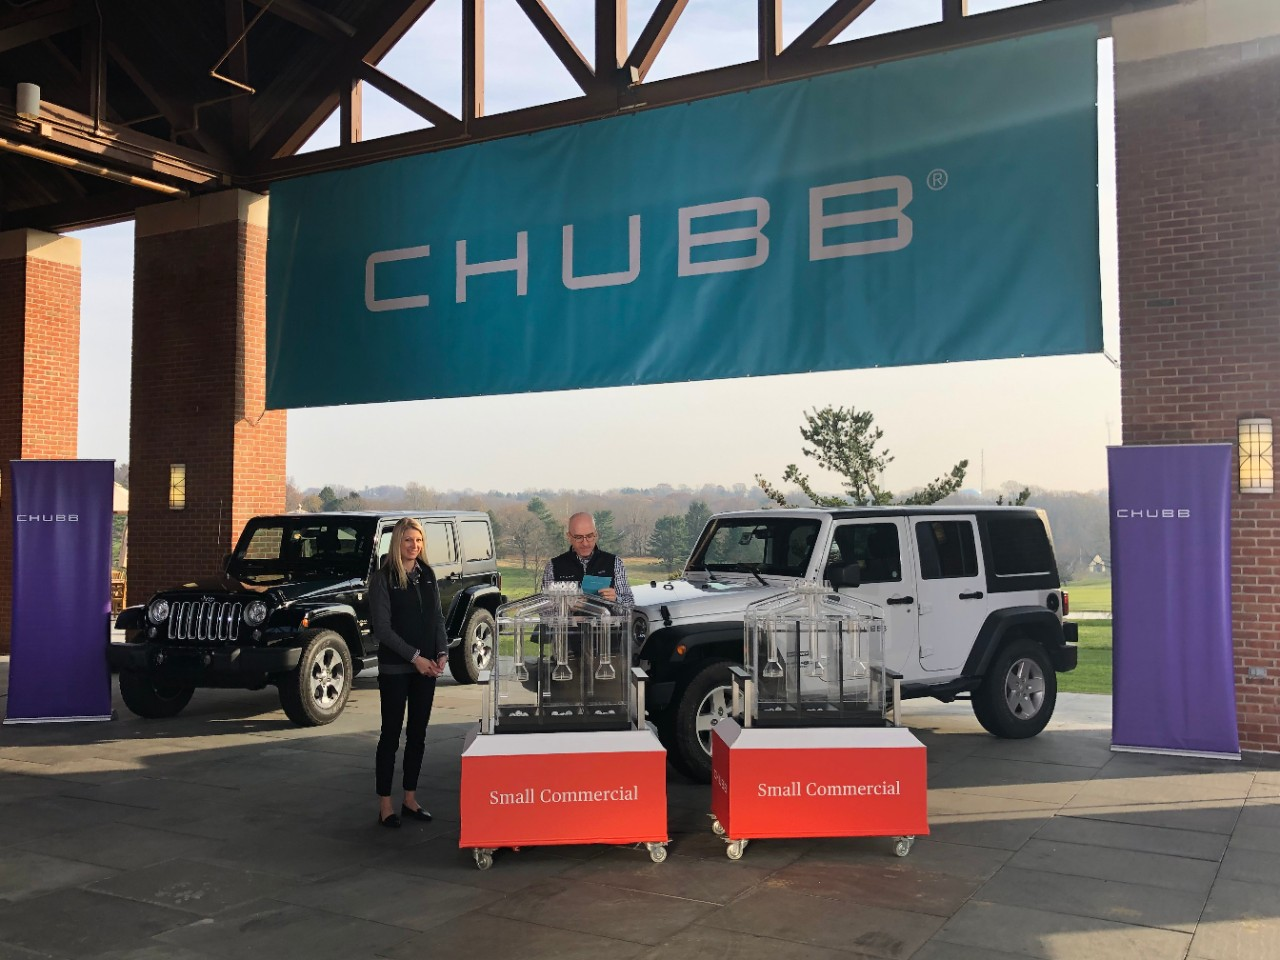 2018--11.19-jeep-giveaway-event2 CHUBB